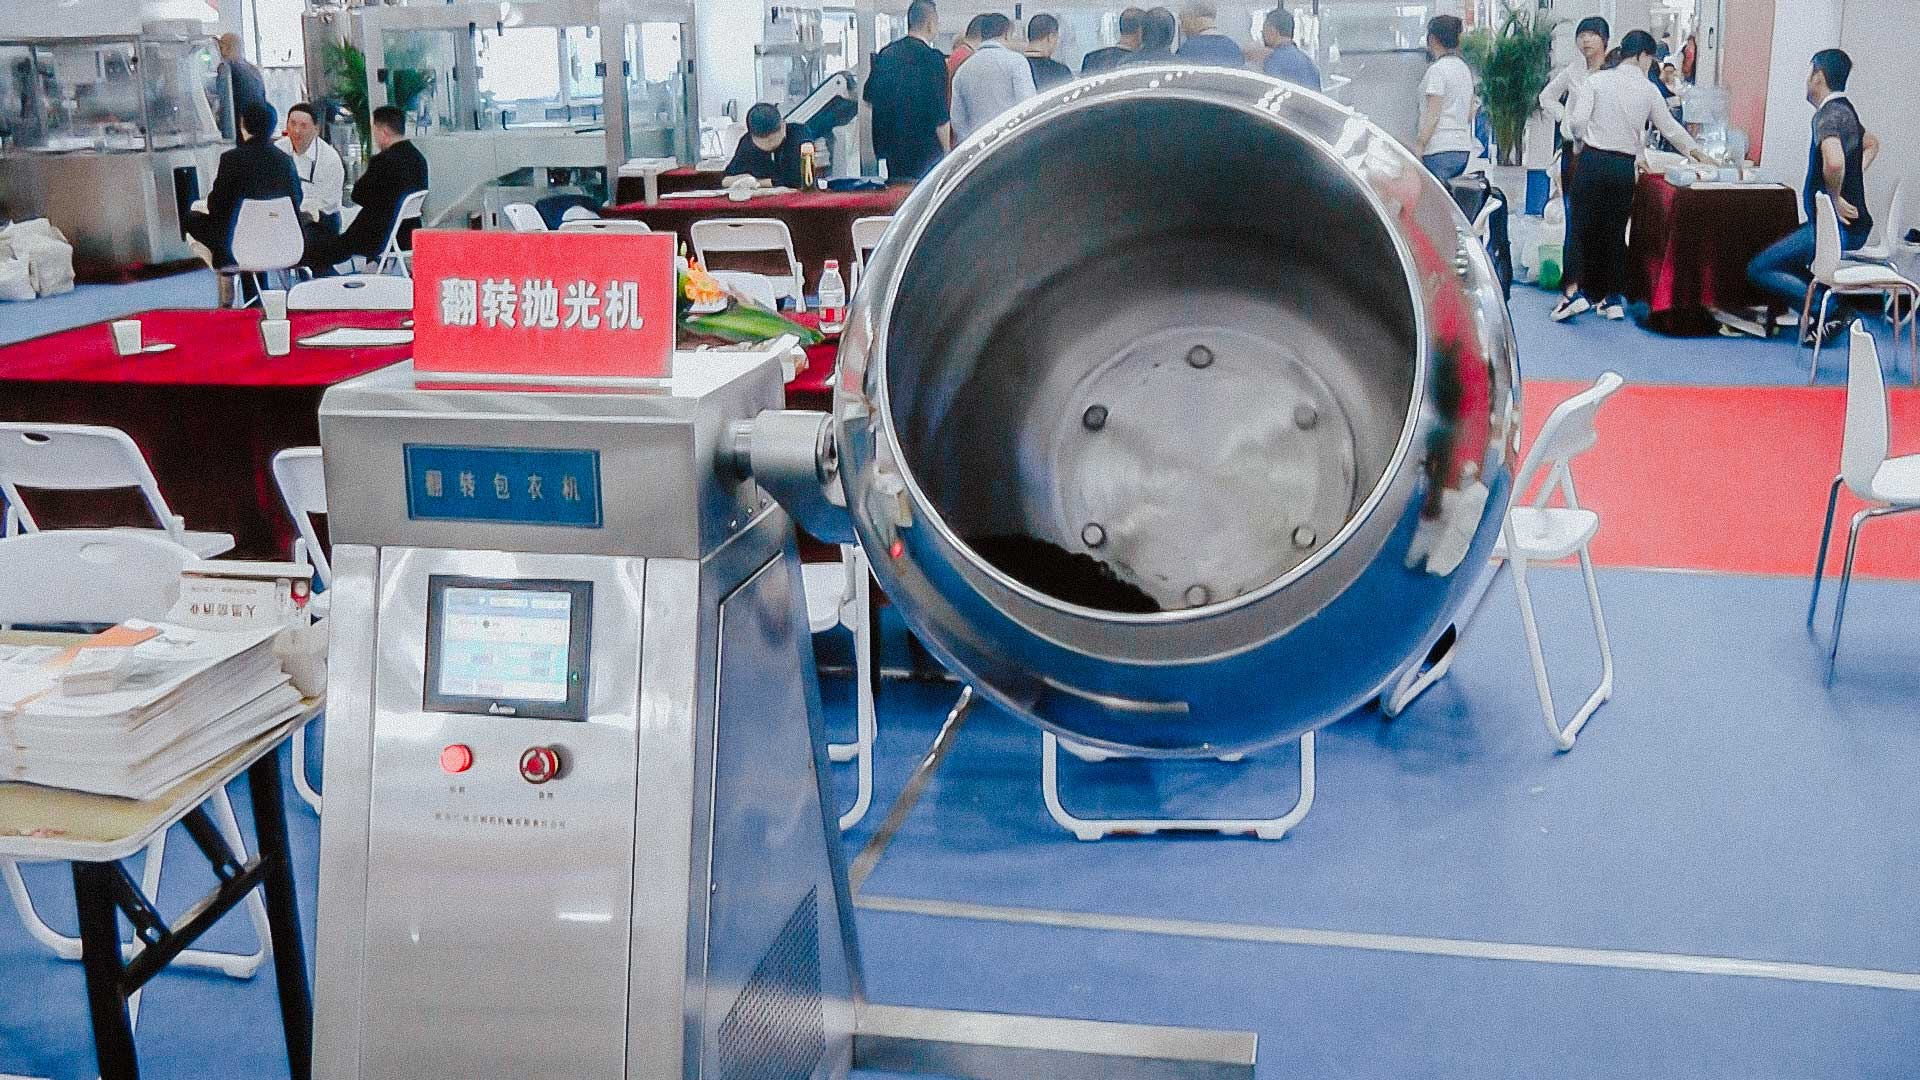 Laboratory Coater machine for tablet coating with protective and colored casing